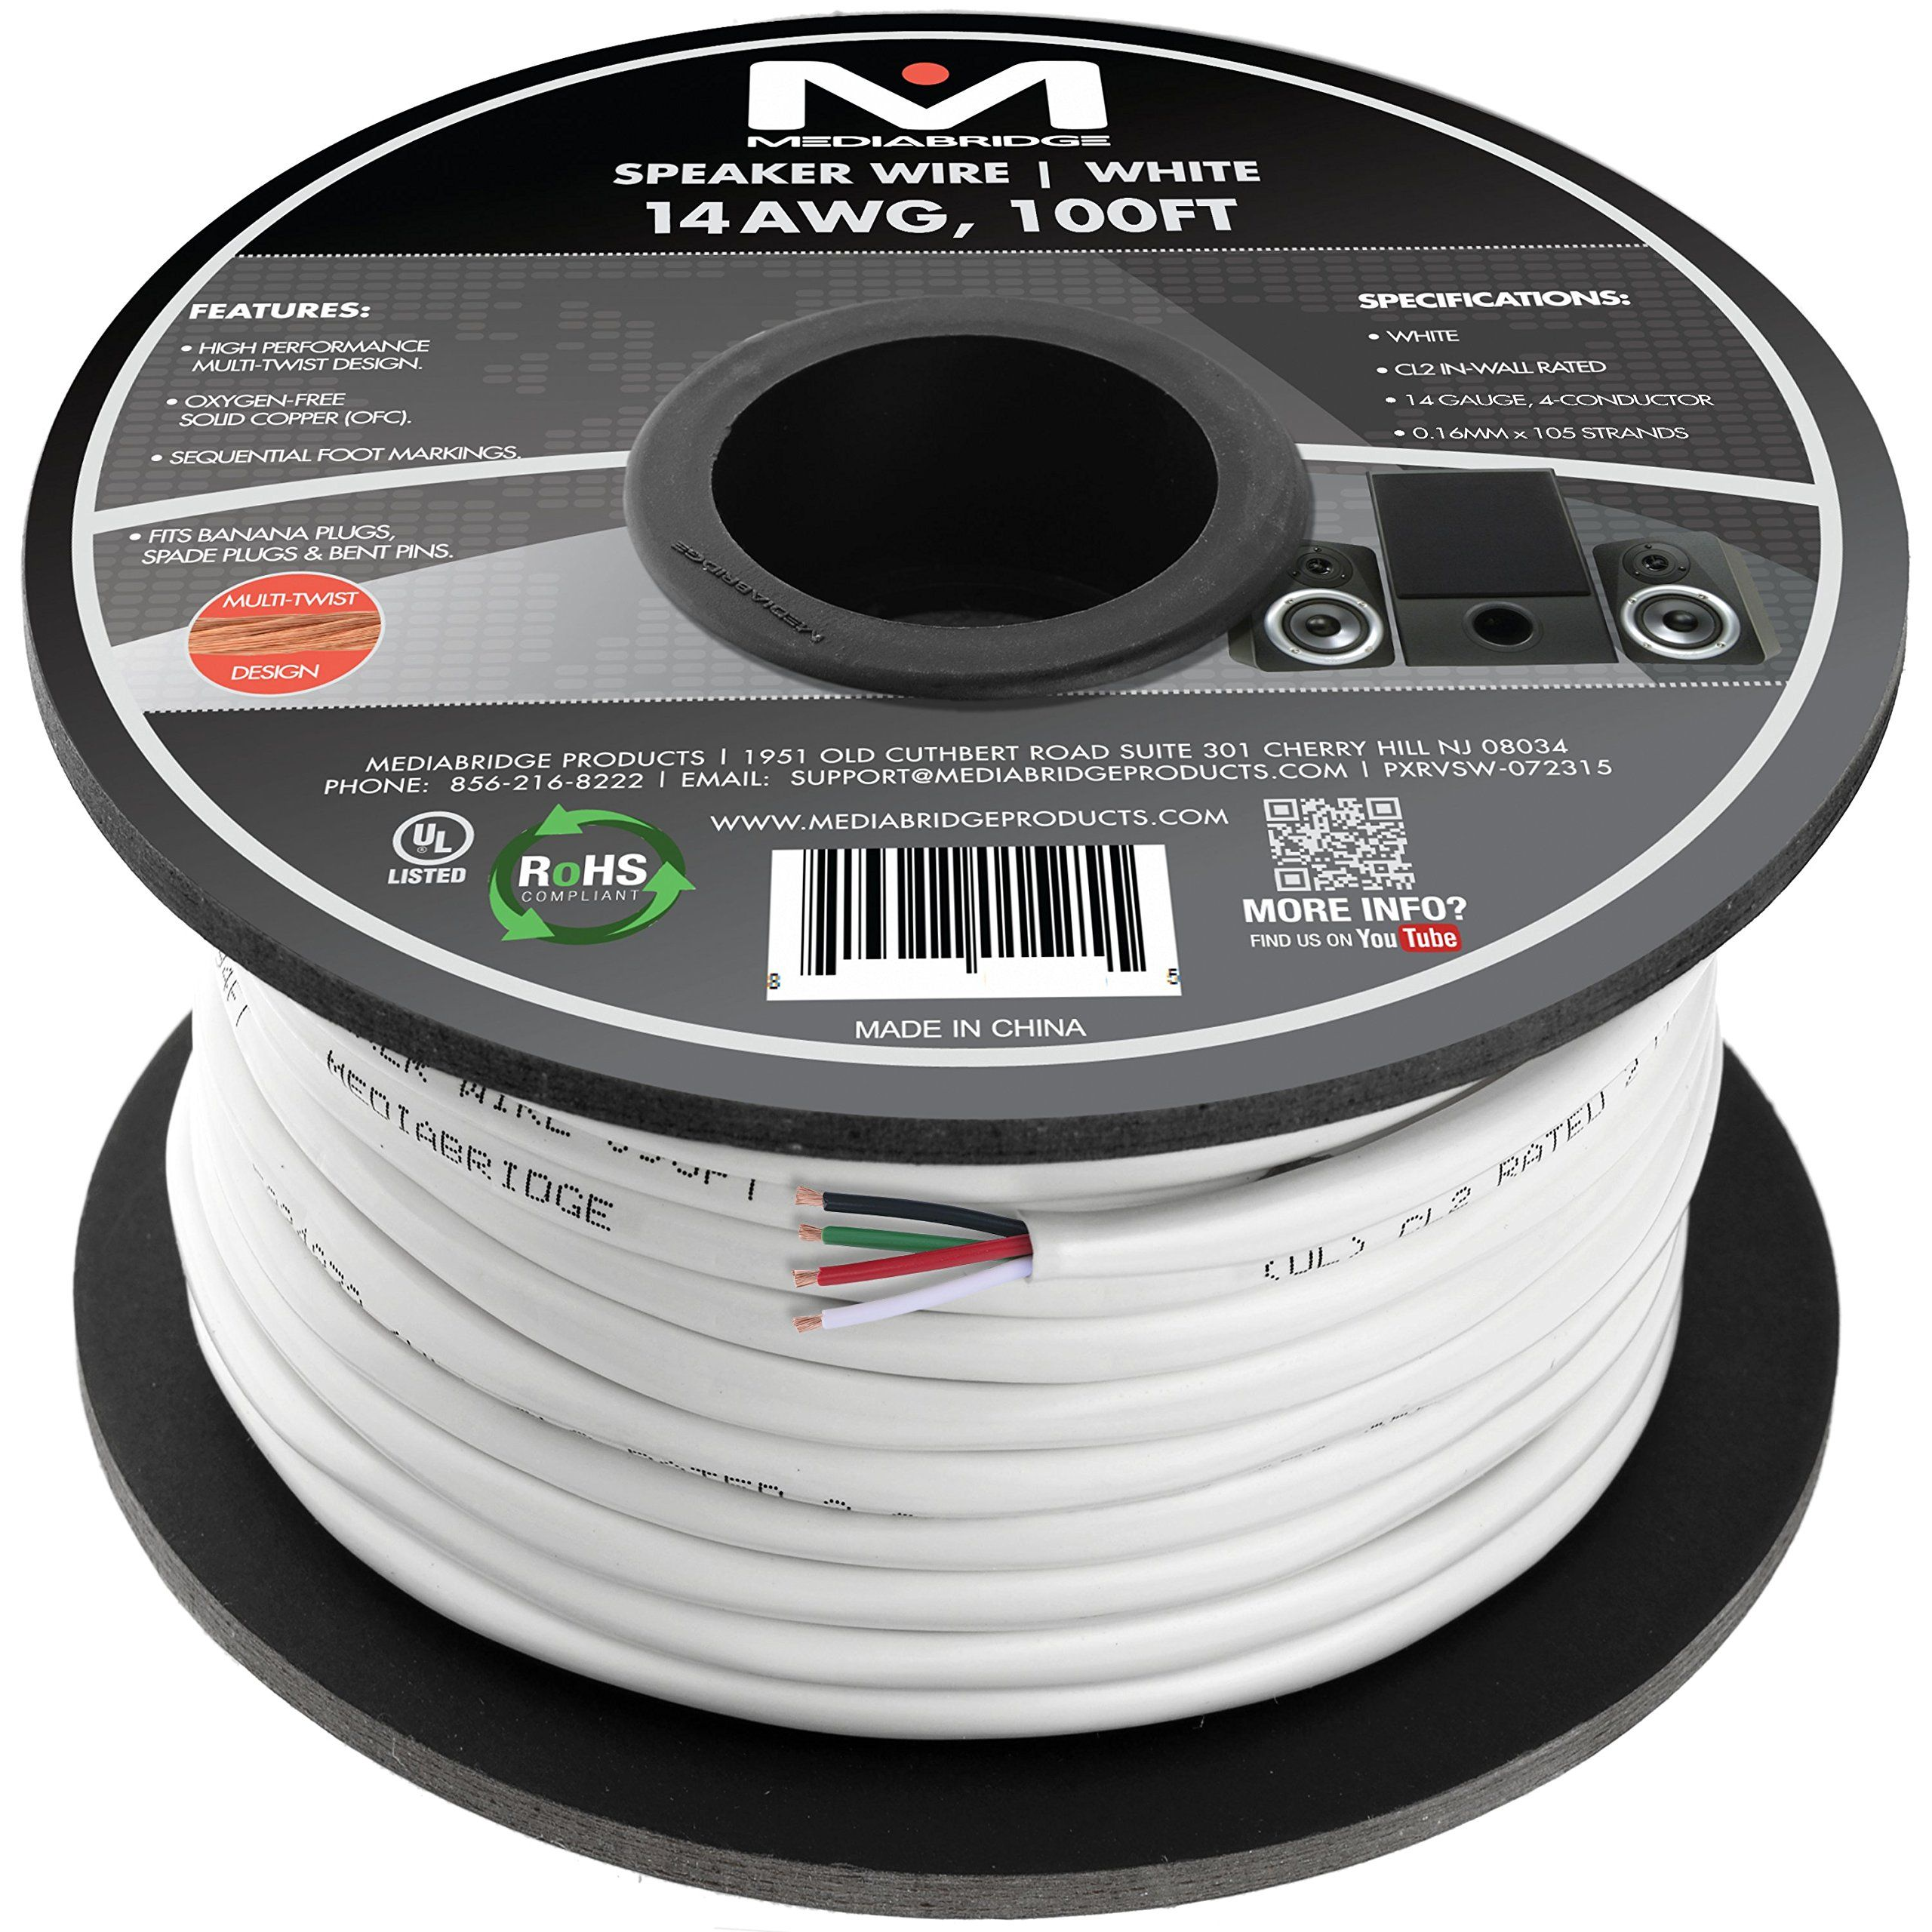 Mediabridge 14awg 4 conductor speaker wire 100 feet white mediabridge speaker wire feet white oxygen free copper ul listed rated for in wall use part keyboard keysfo Choice Image